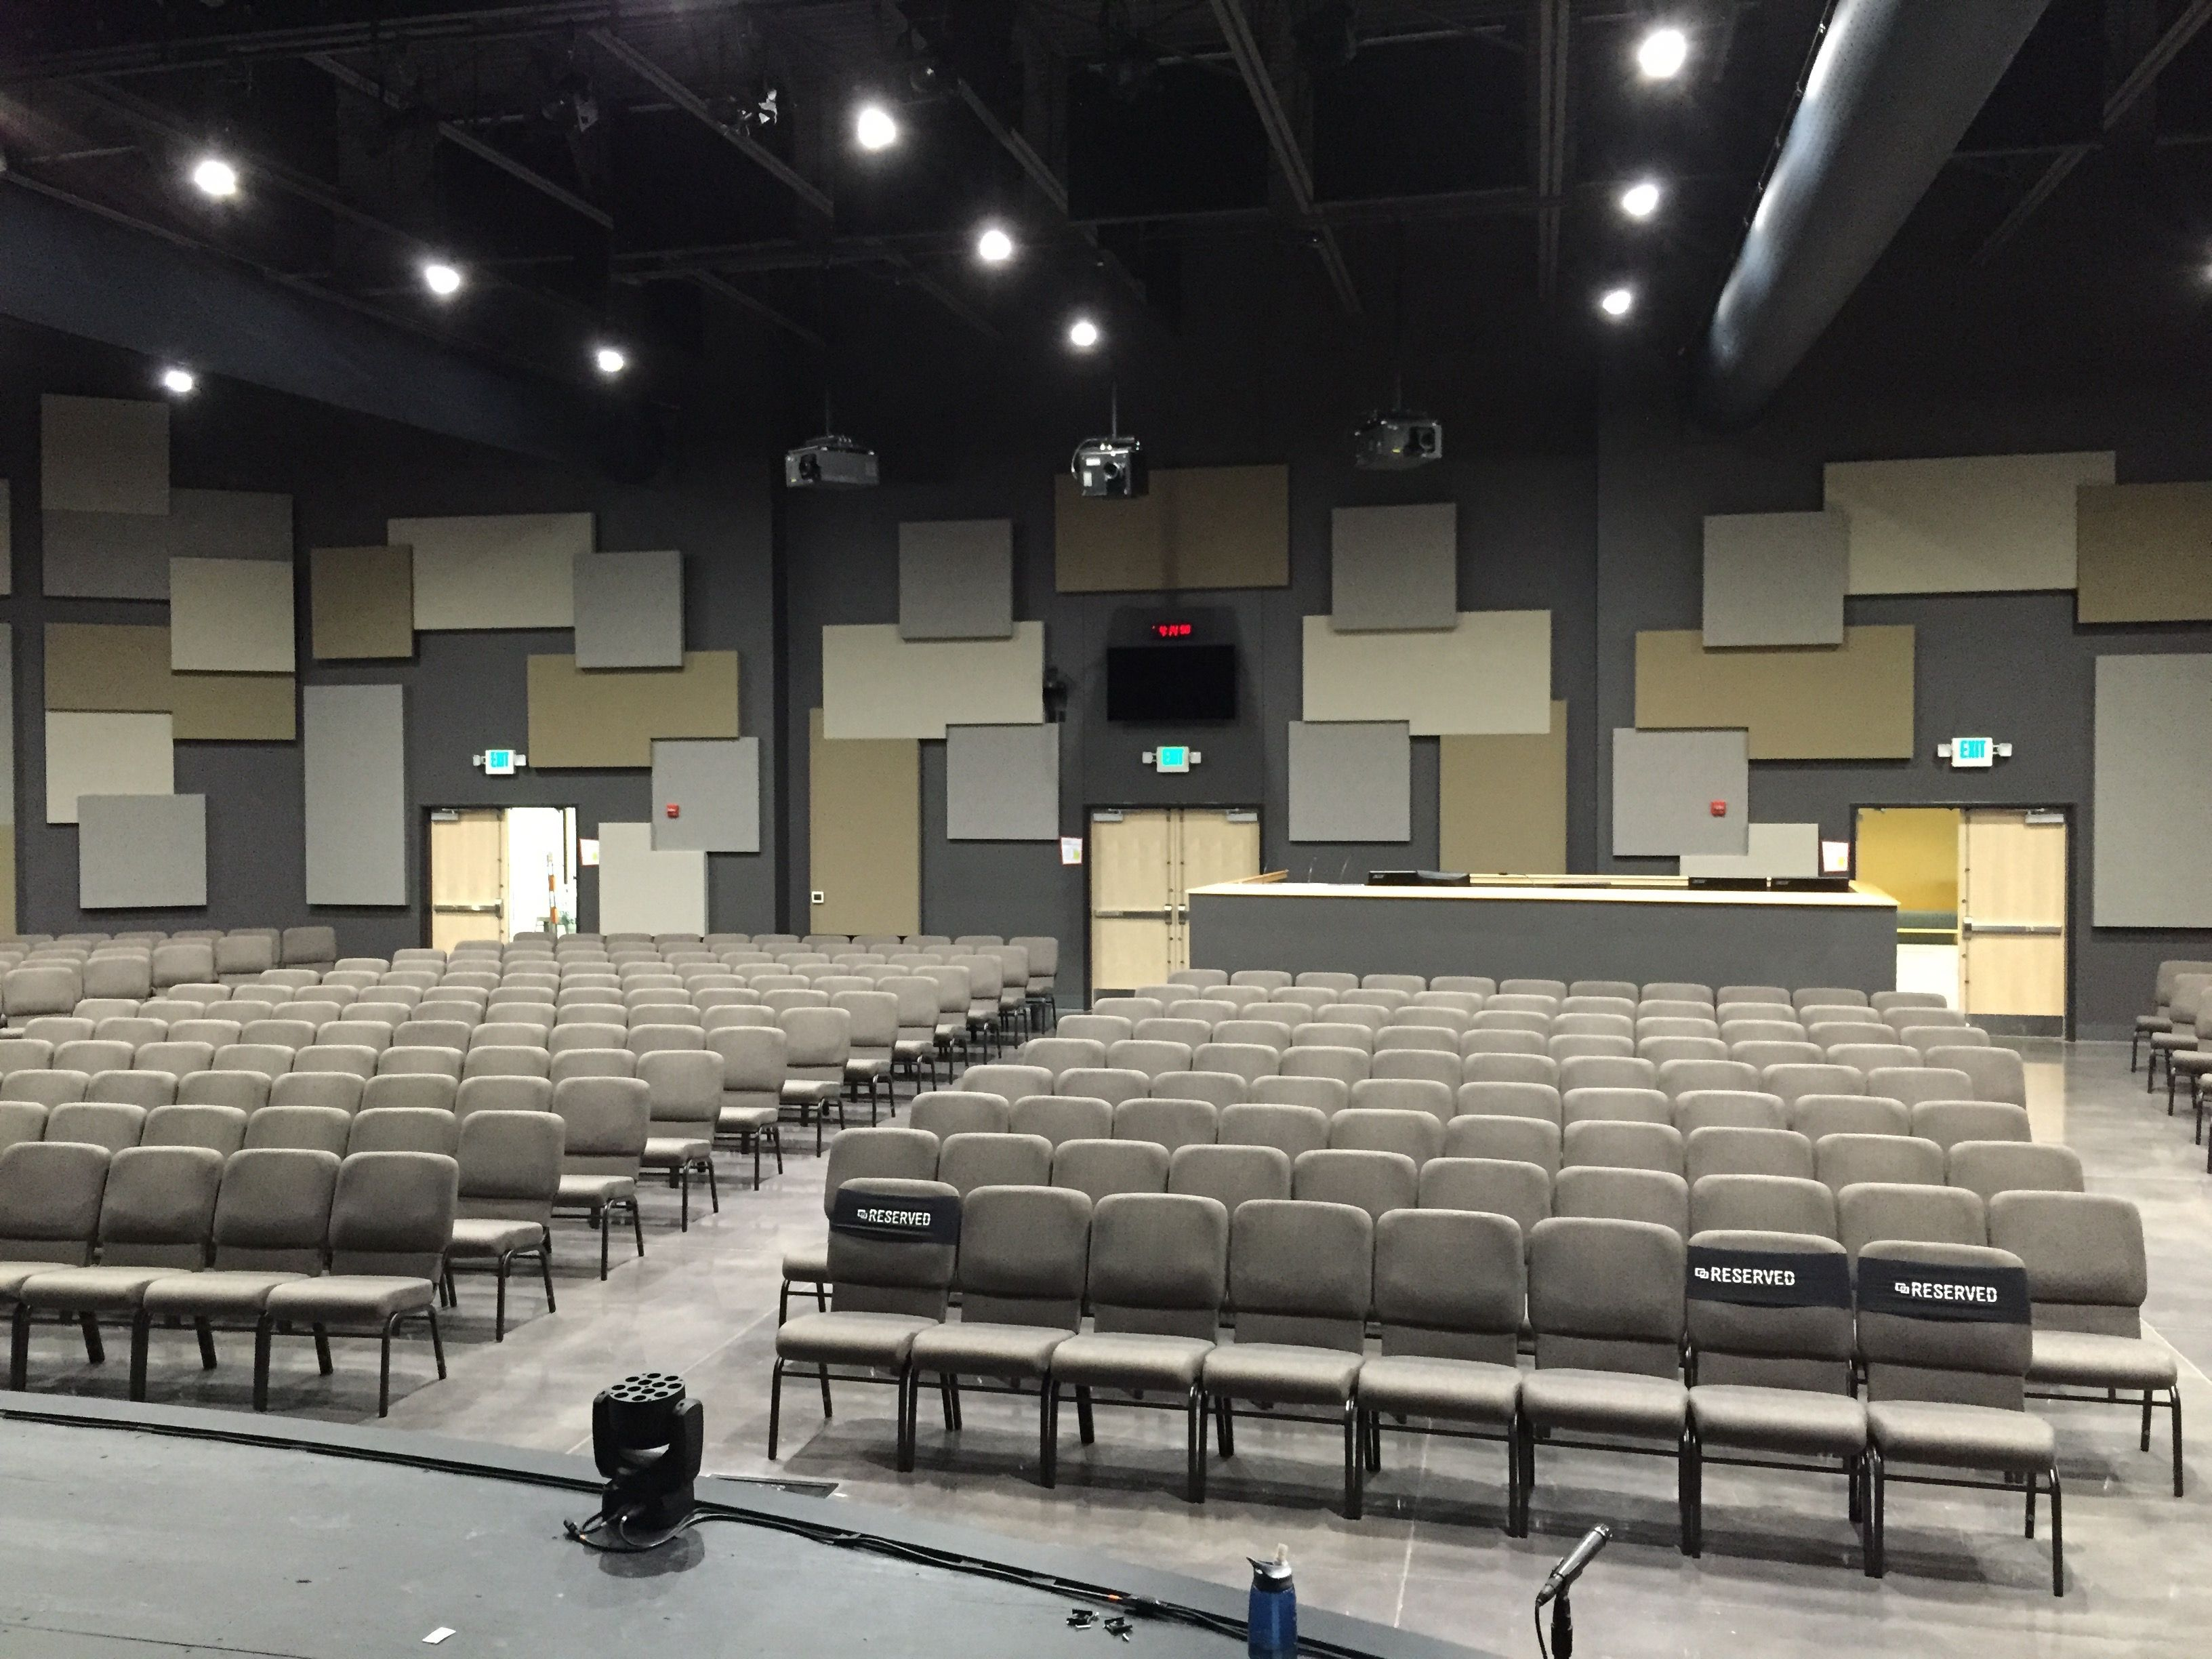 North View church sanctuary in Fishers IN Black out ceiling